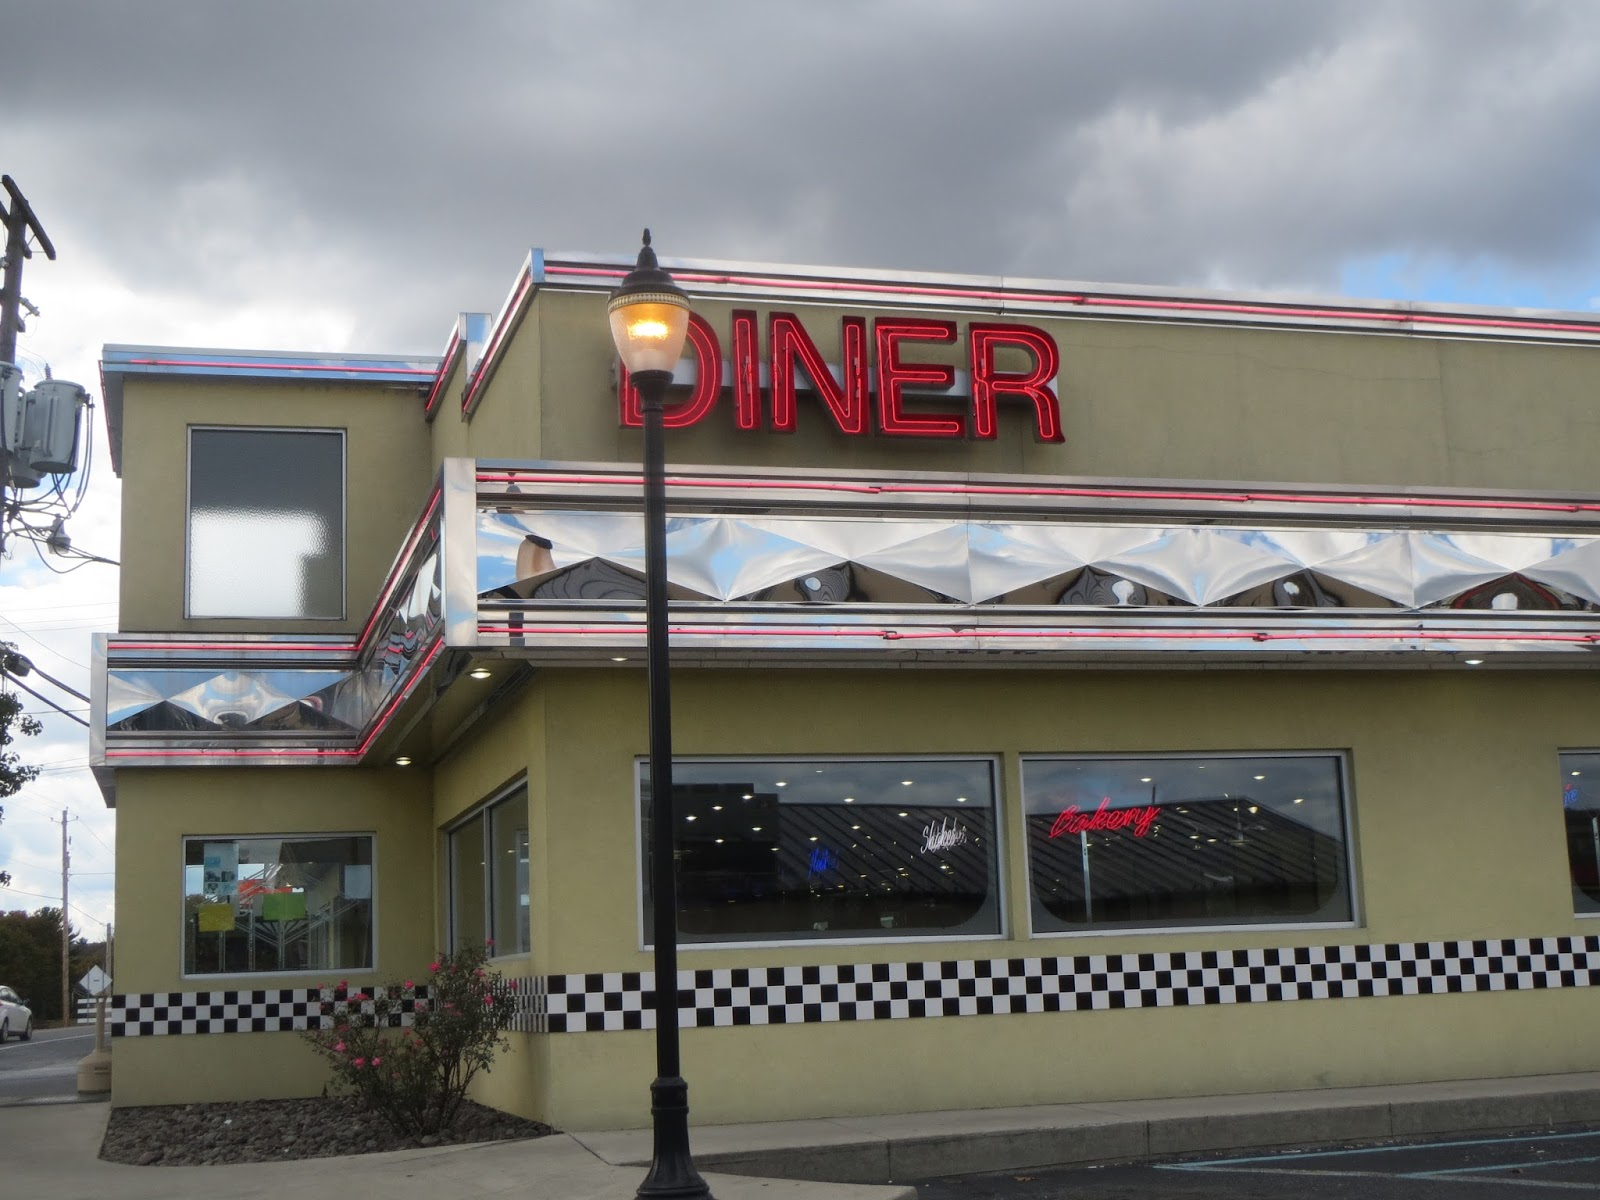 We Were In Pennsylvania And Ready For Lunch When Saw Diner Knew Had Found Our Restaurant